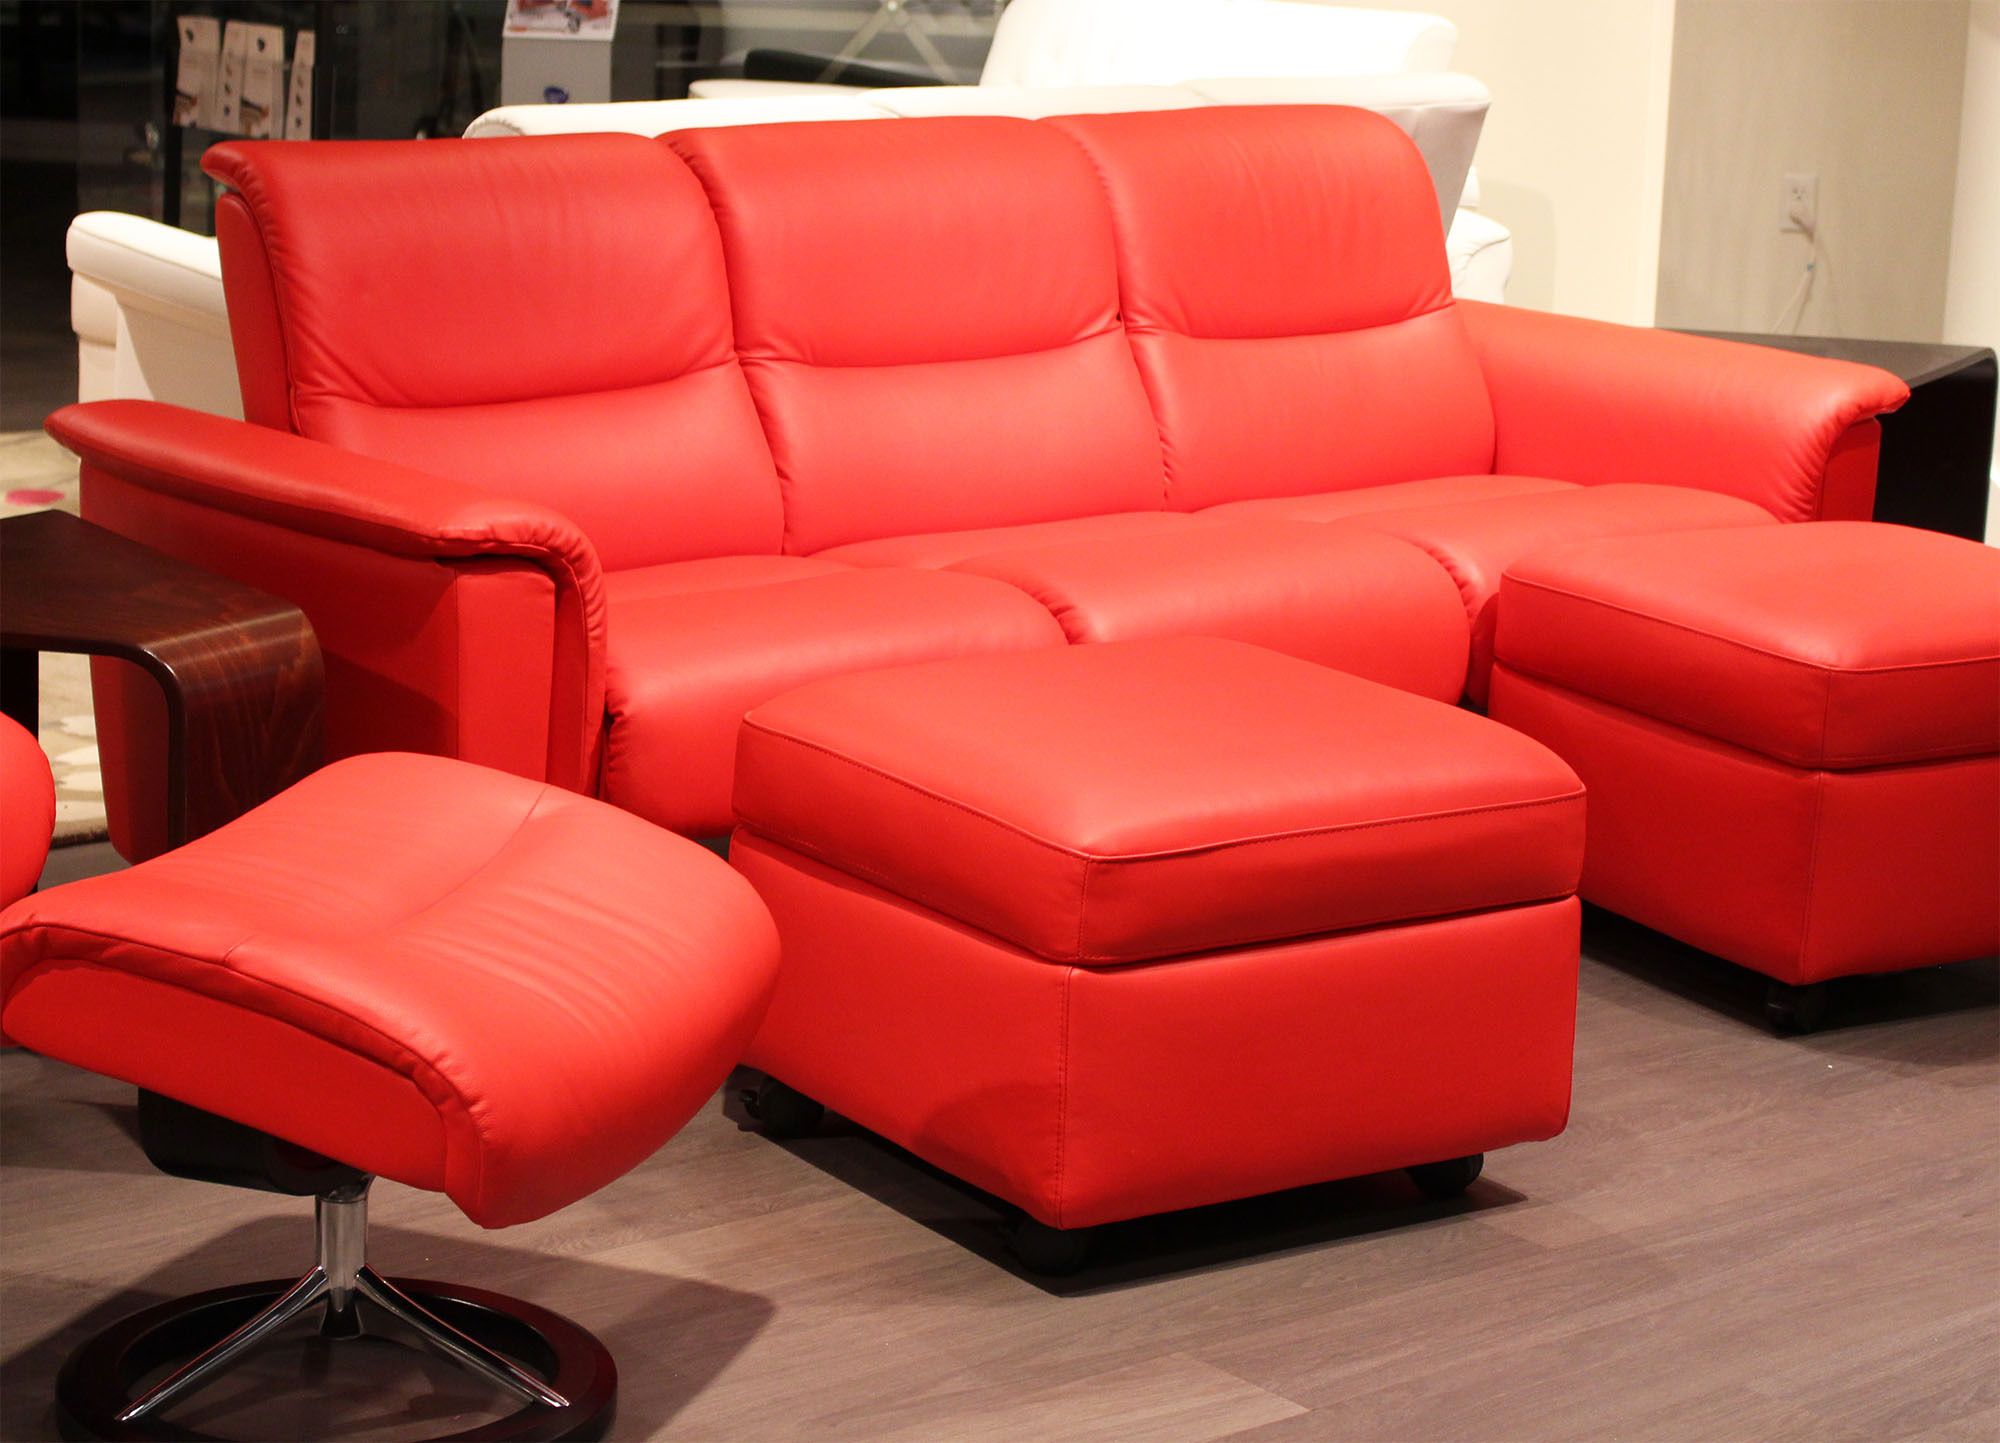 Stressless Paloma Tomato 09461 Leather By Ekornes